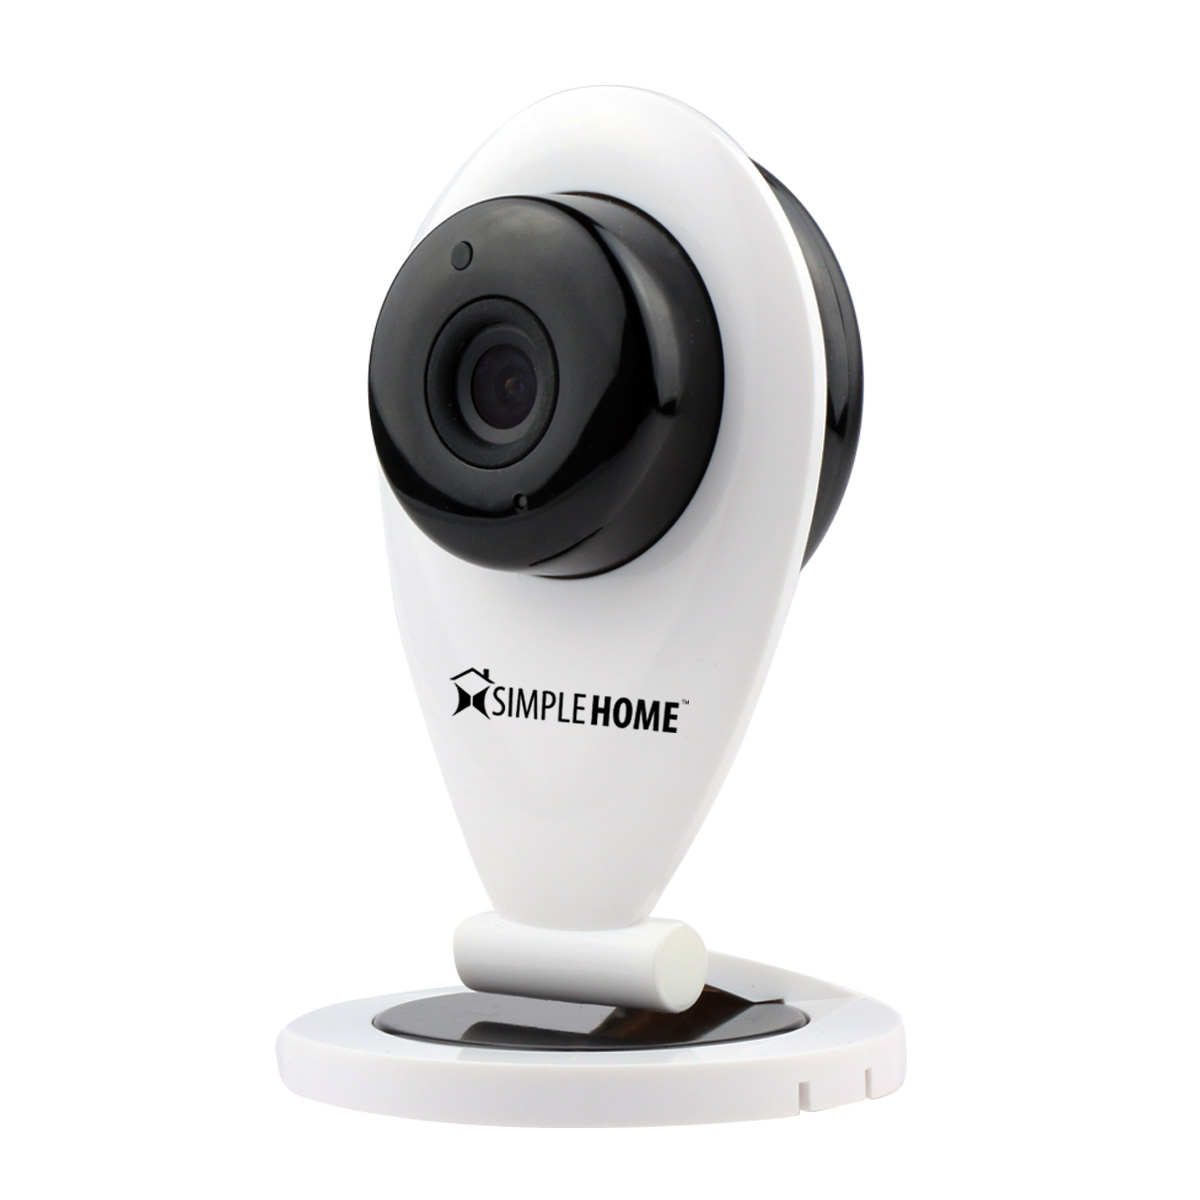 Wi-Fi Security Camera w/ Motion Detection • Go Simple Home